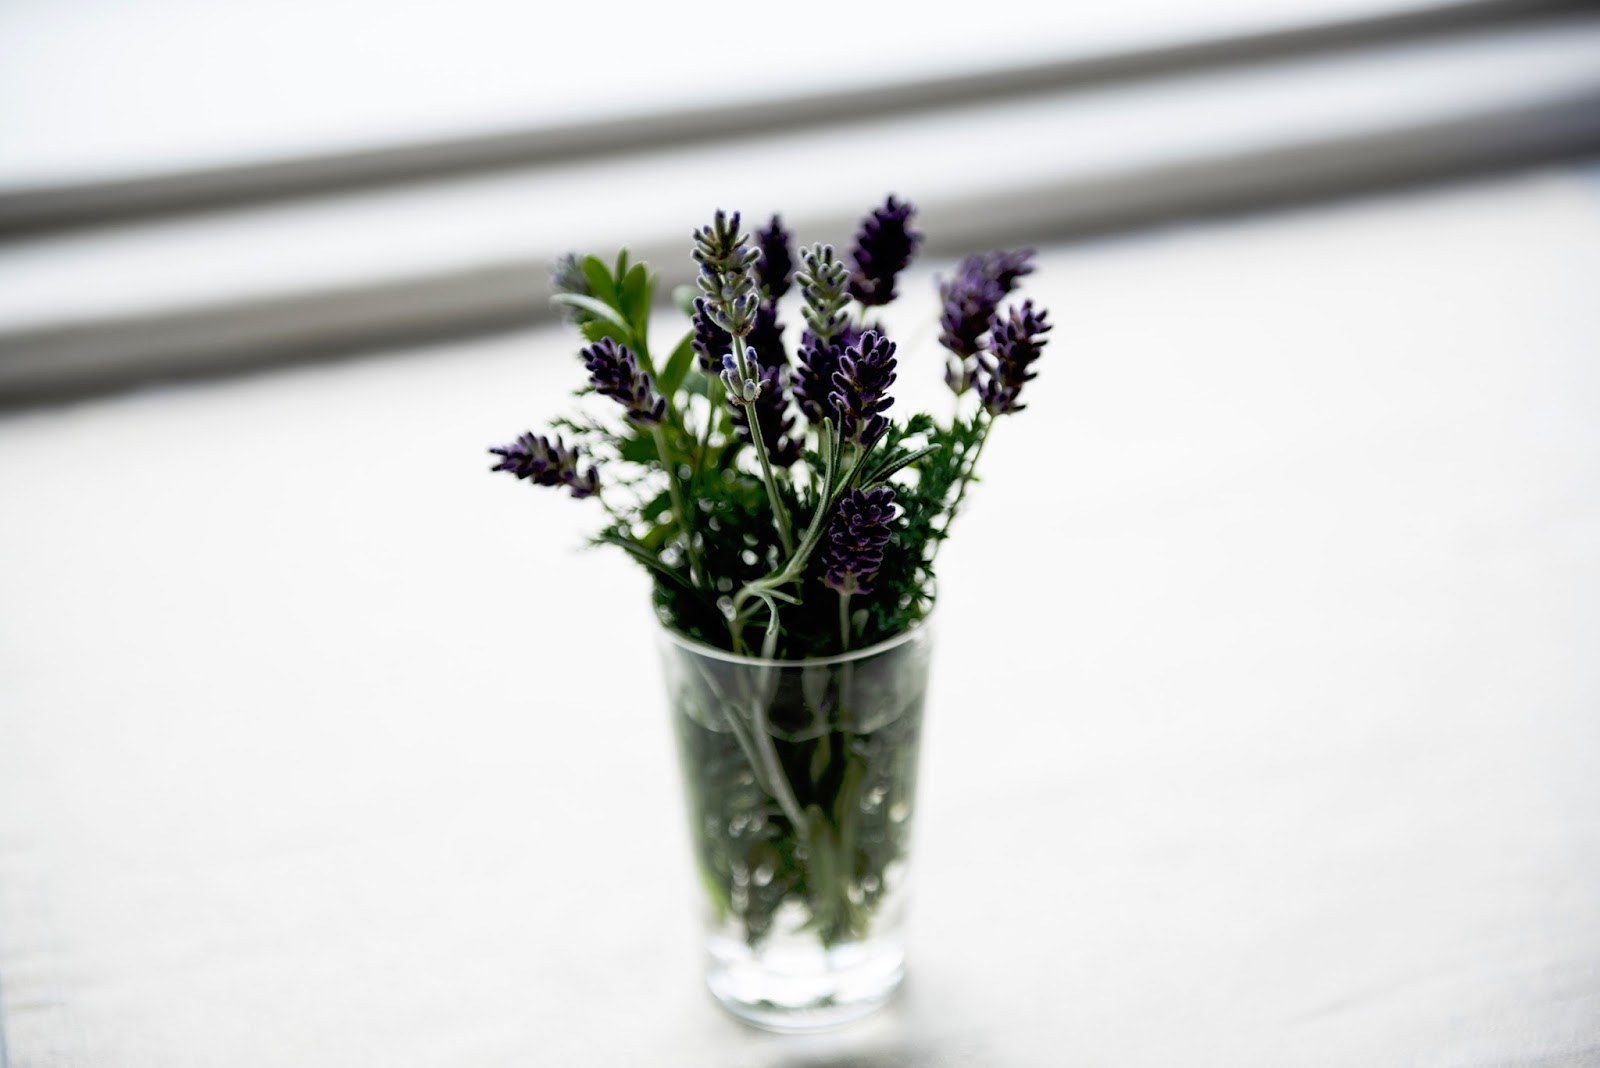 freshen up your living space for summer - Collection of lavender stems in a small glass